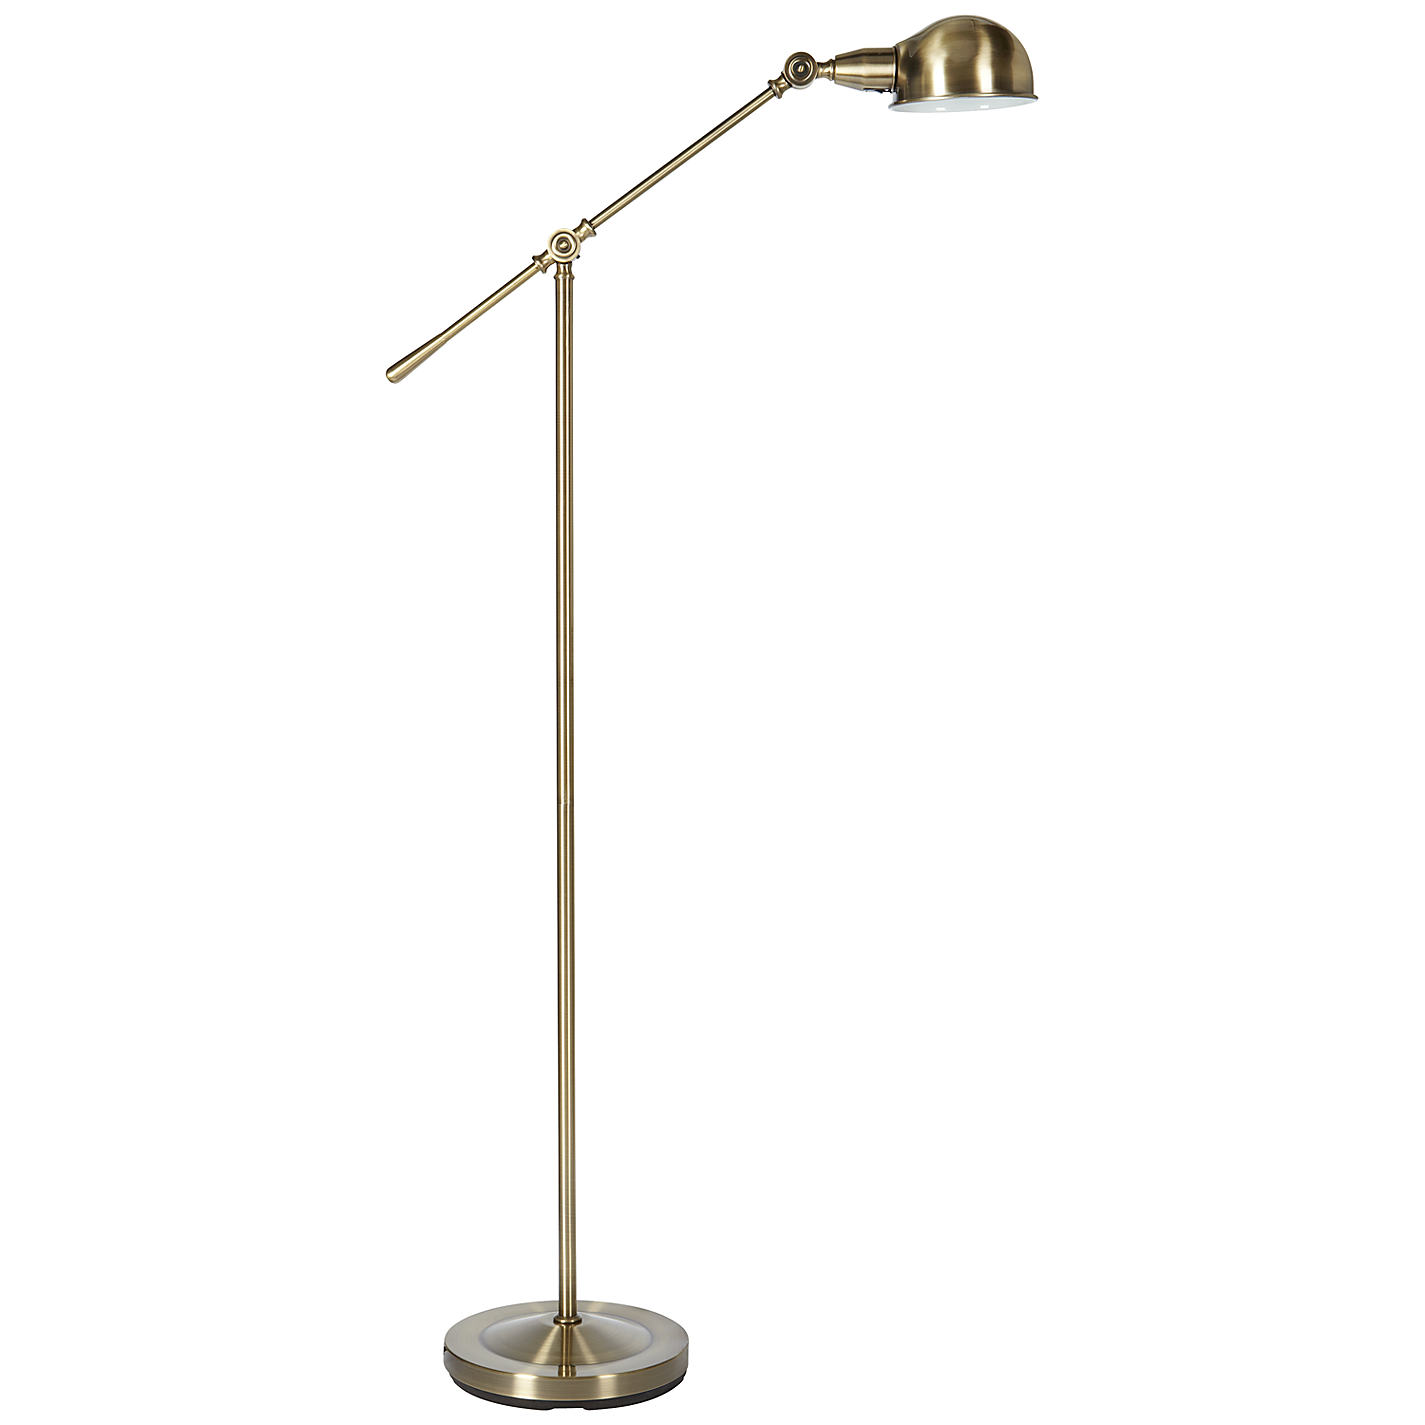 Buy john lewis james floor lamp antique brass john lewis buy john lewis james floor lamp antique brass online at johnlewis mozeypictures Gallery